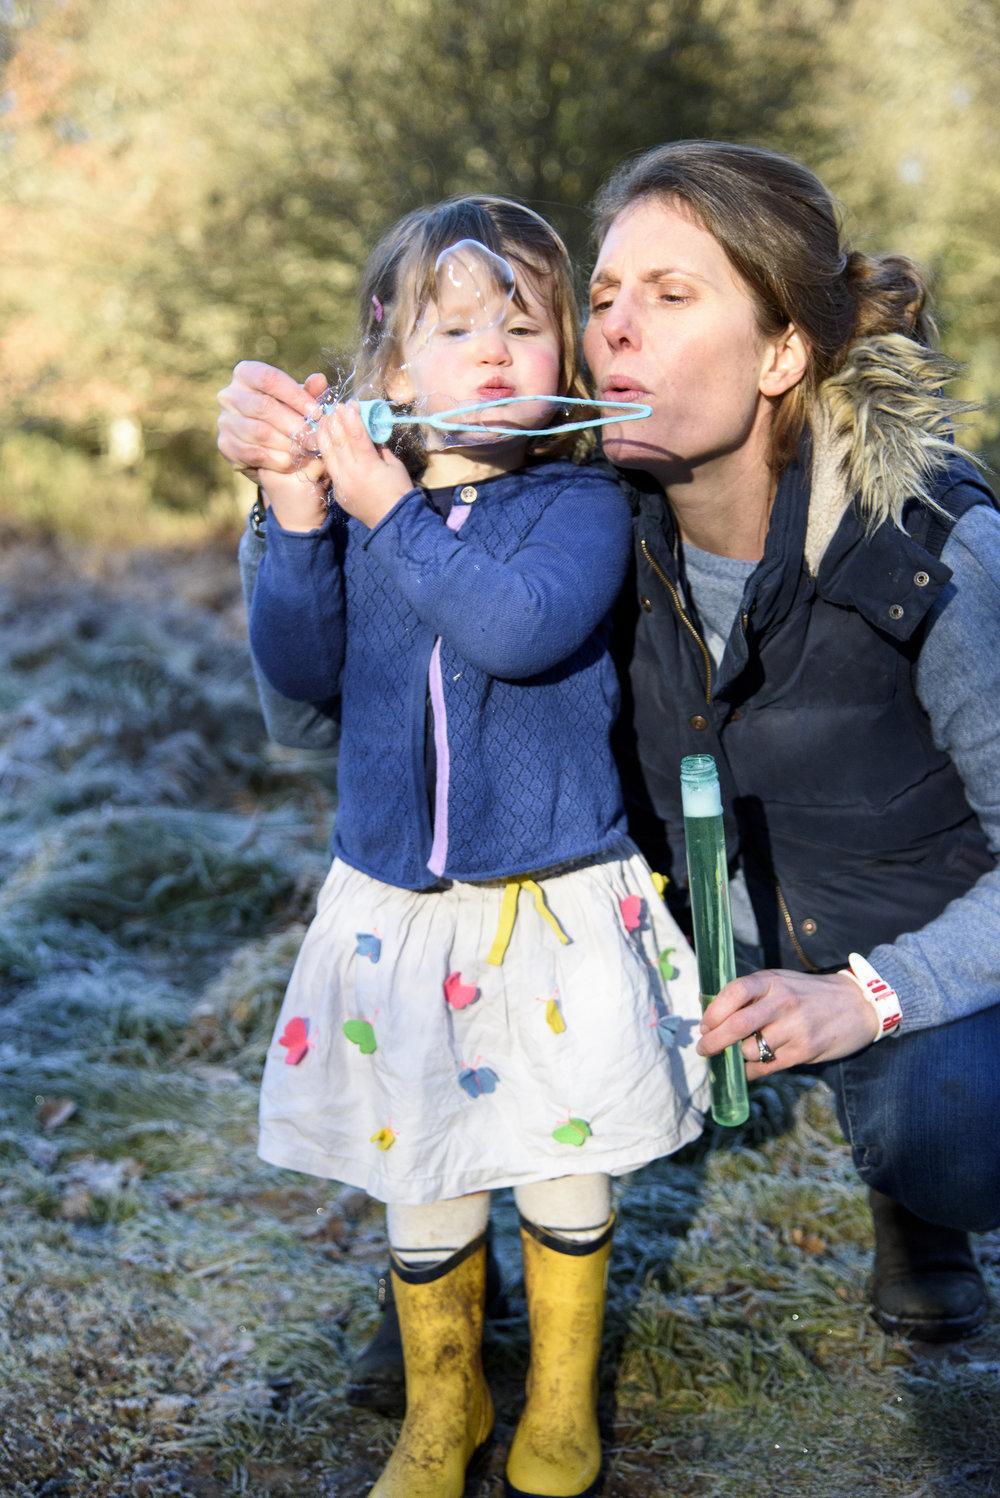 sally-hornung-photgraphy-mother-daughter-bubbles1.jpg